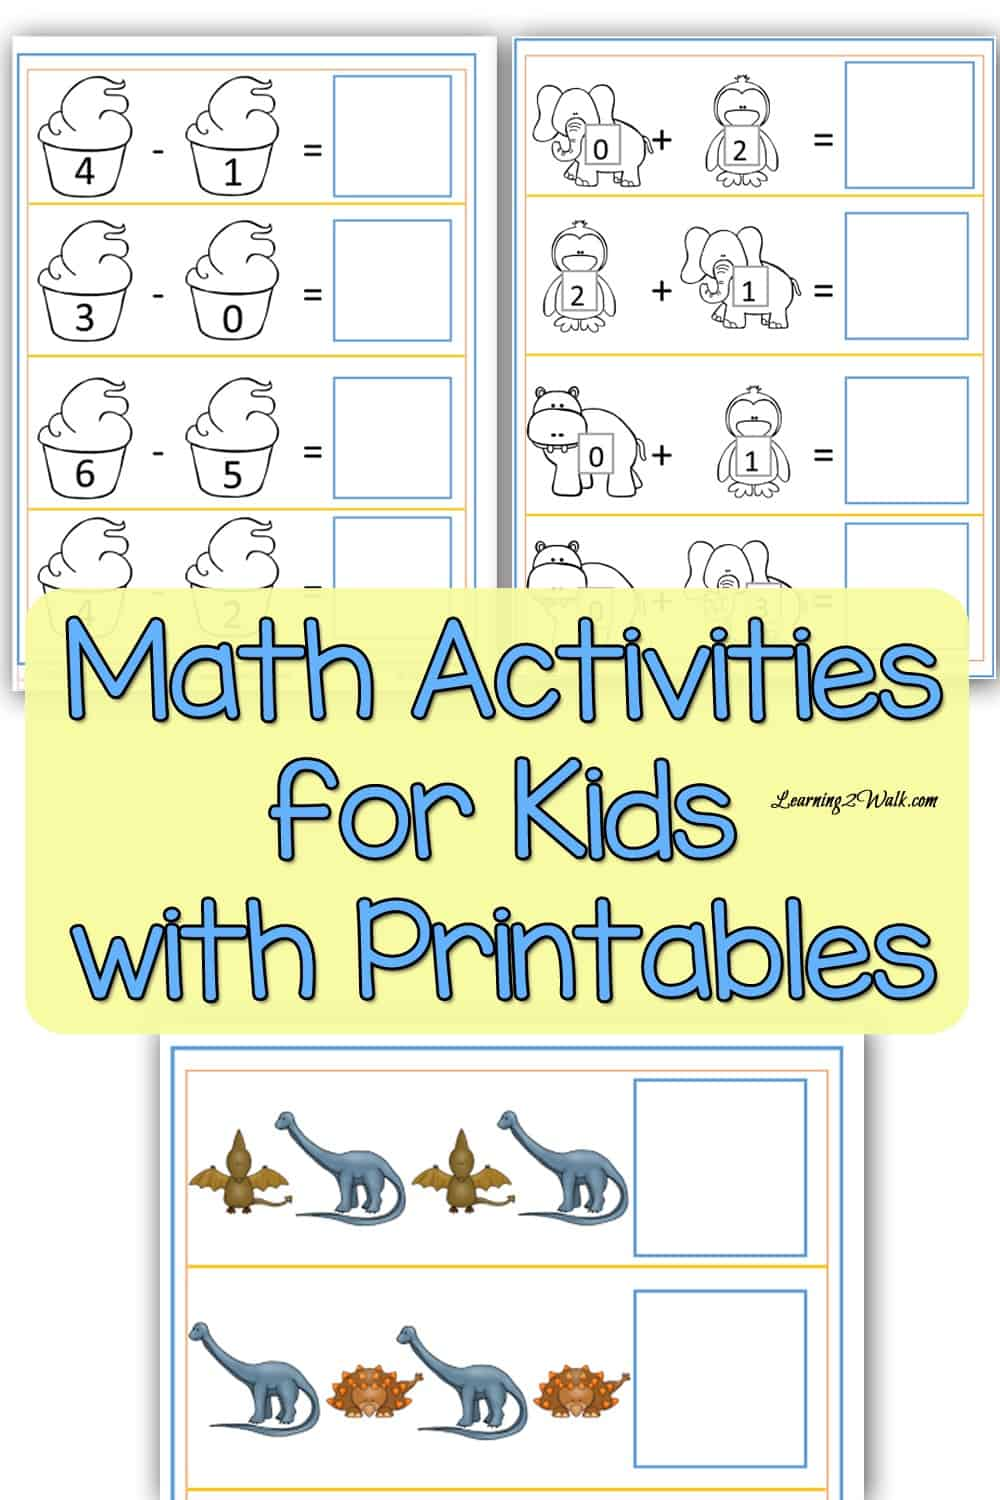 Looking for a few math activities for kids with printables? Perhaps a solar system kindergarten printable or maybe a my family pattern match preschool printable? Try some of these